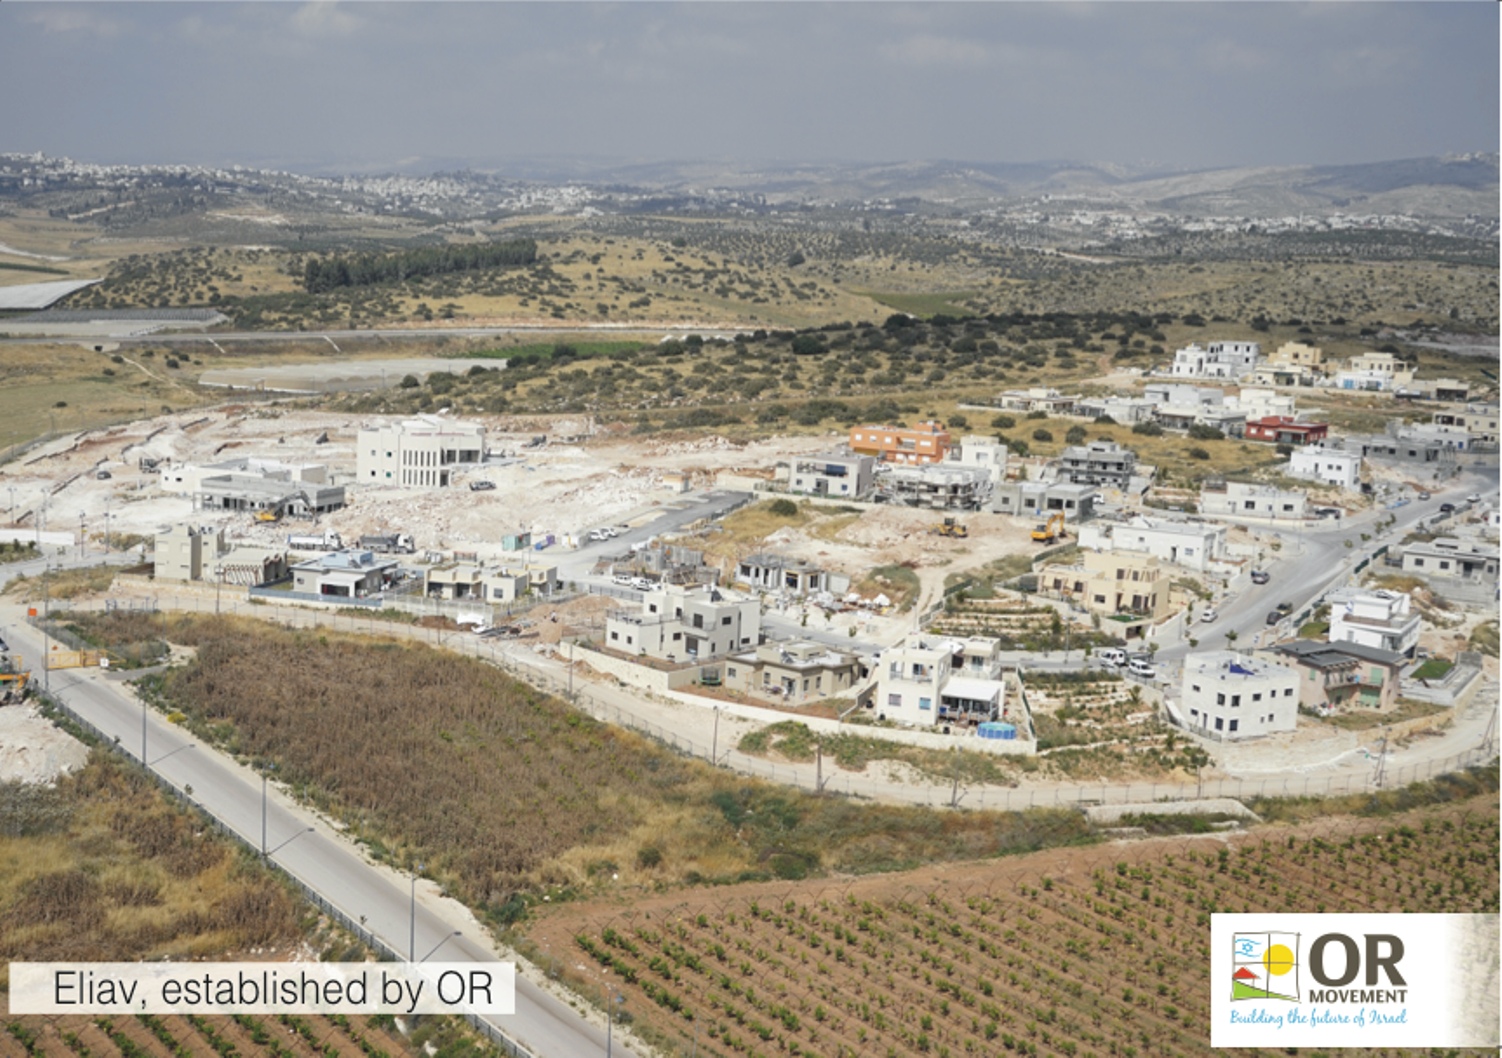 OR-Eliav. Eliav, an OR Movement community under construction southeast of Kiryat Gat, has a core group of 39 secular and Orthodox families. The final stage of the project will house 220 families. Photo courtesy